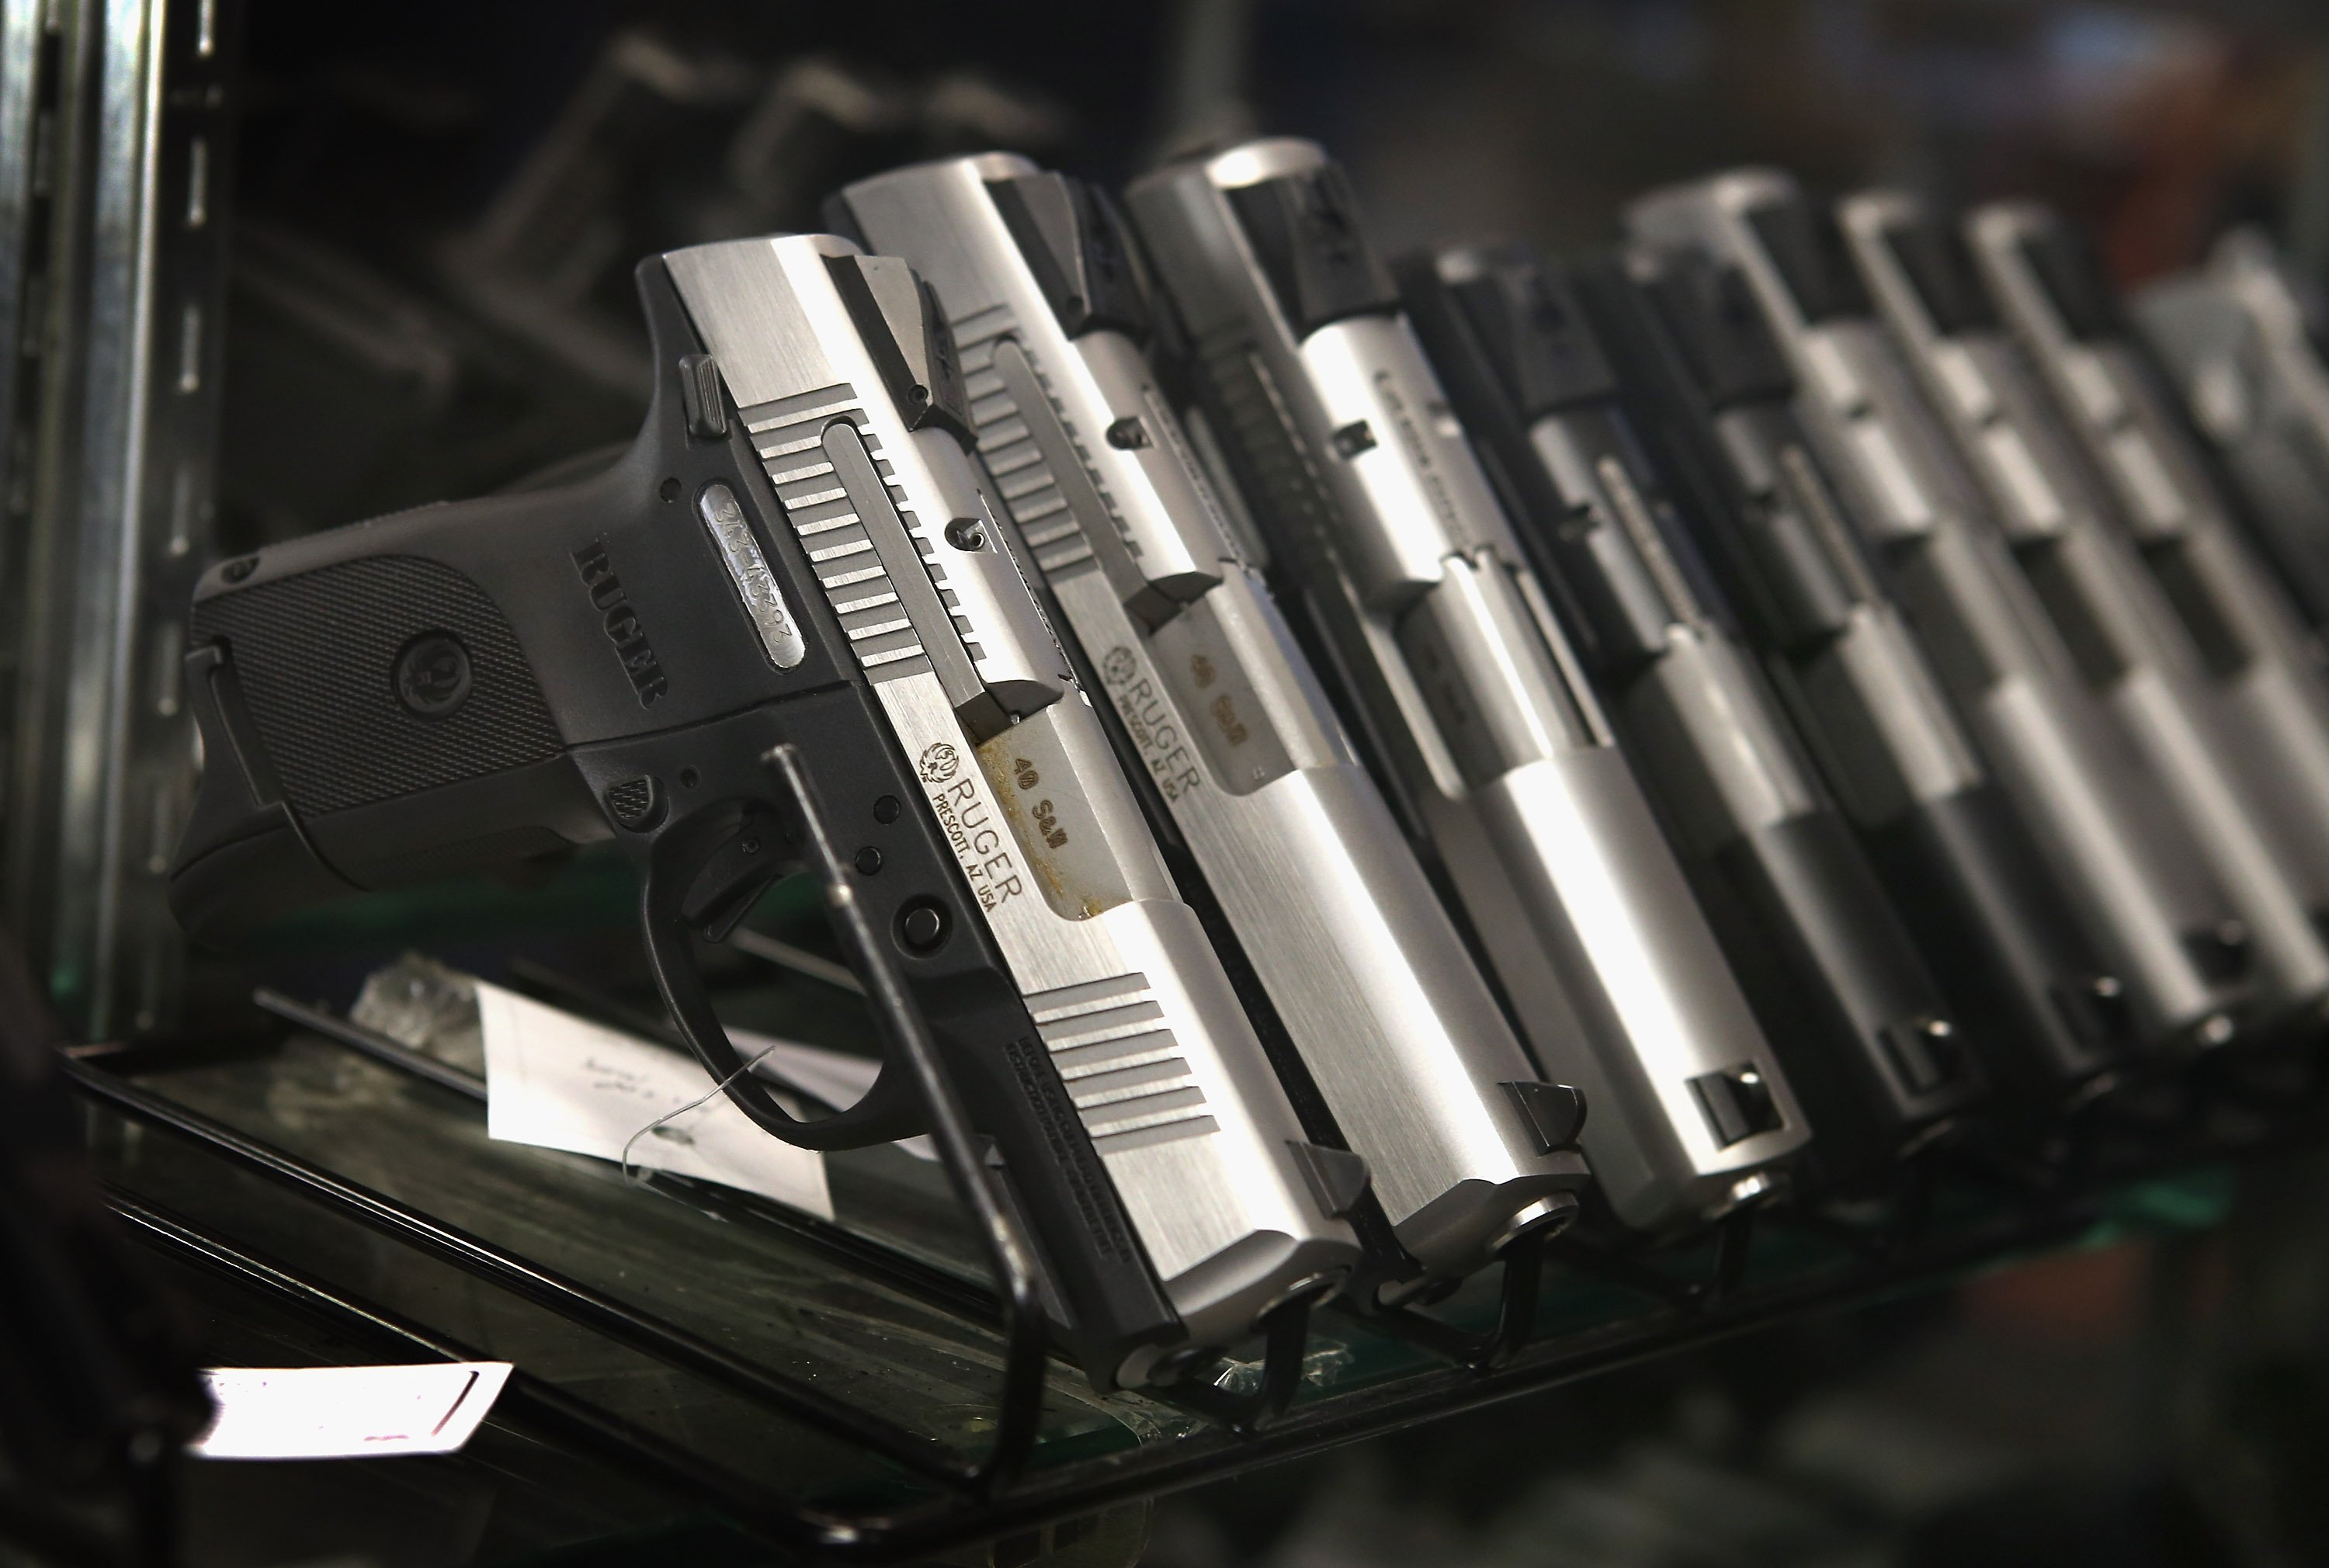 Children in states with strict gun laws are less likely to die, according to a new study